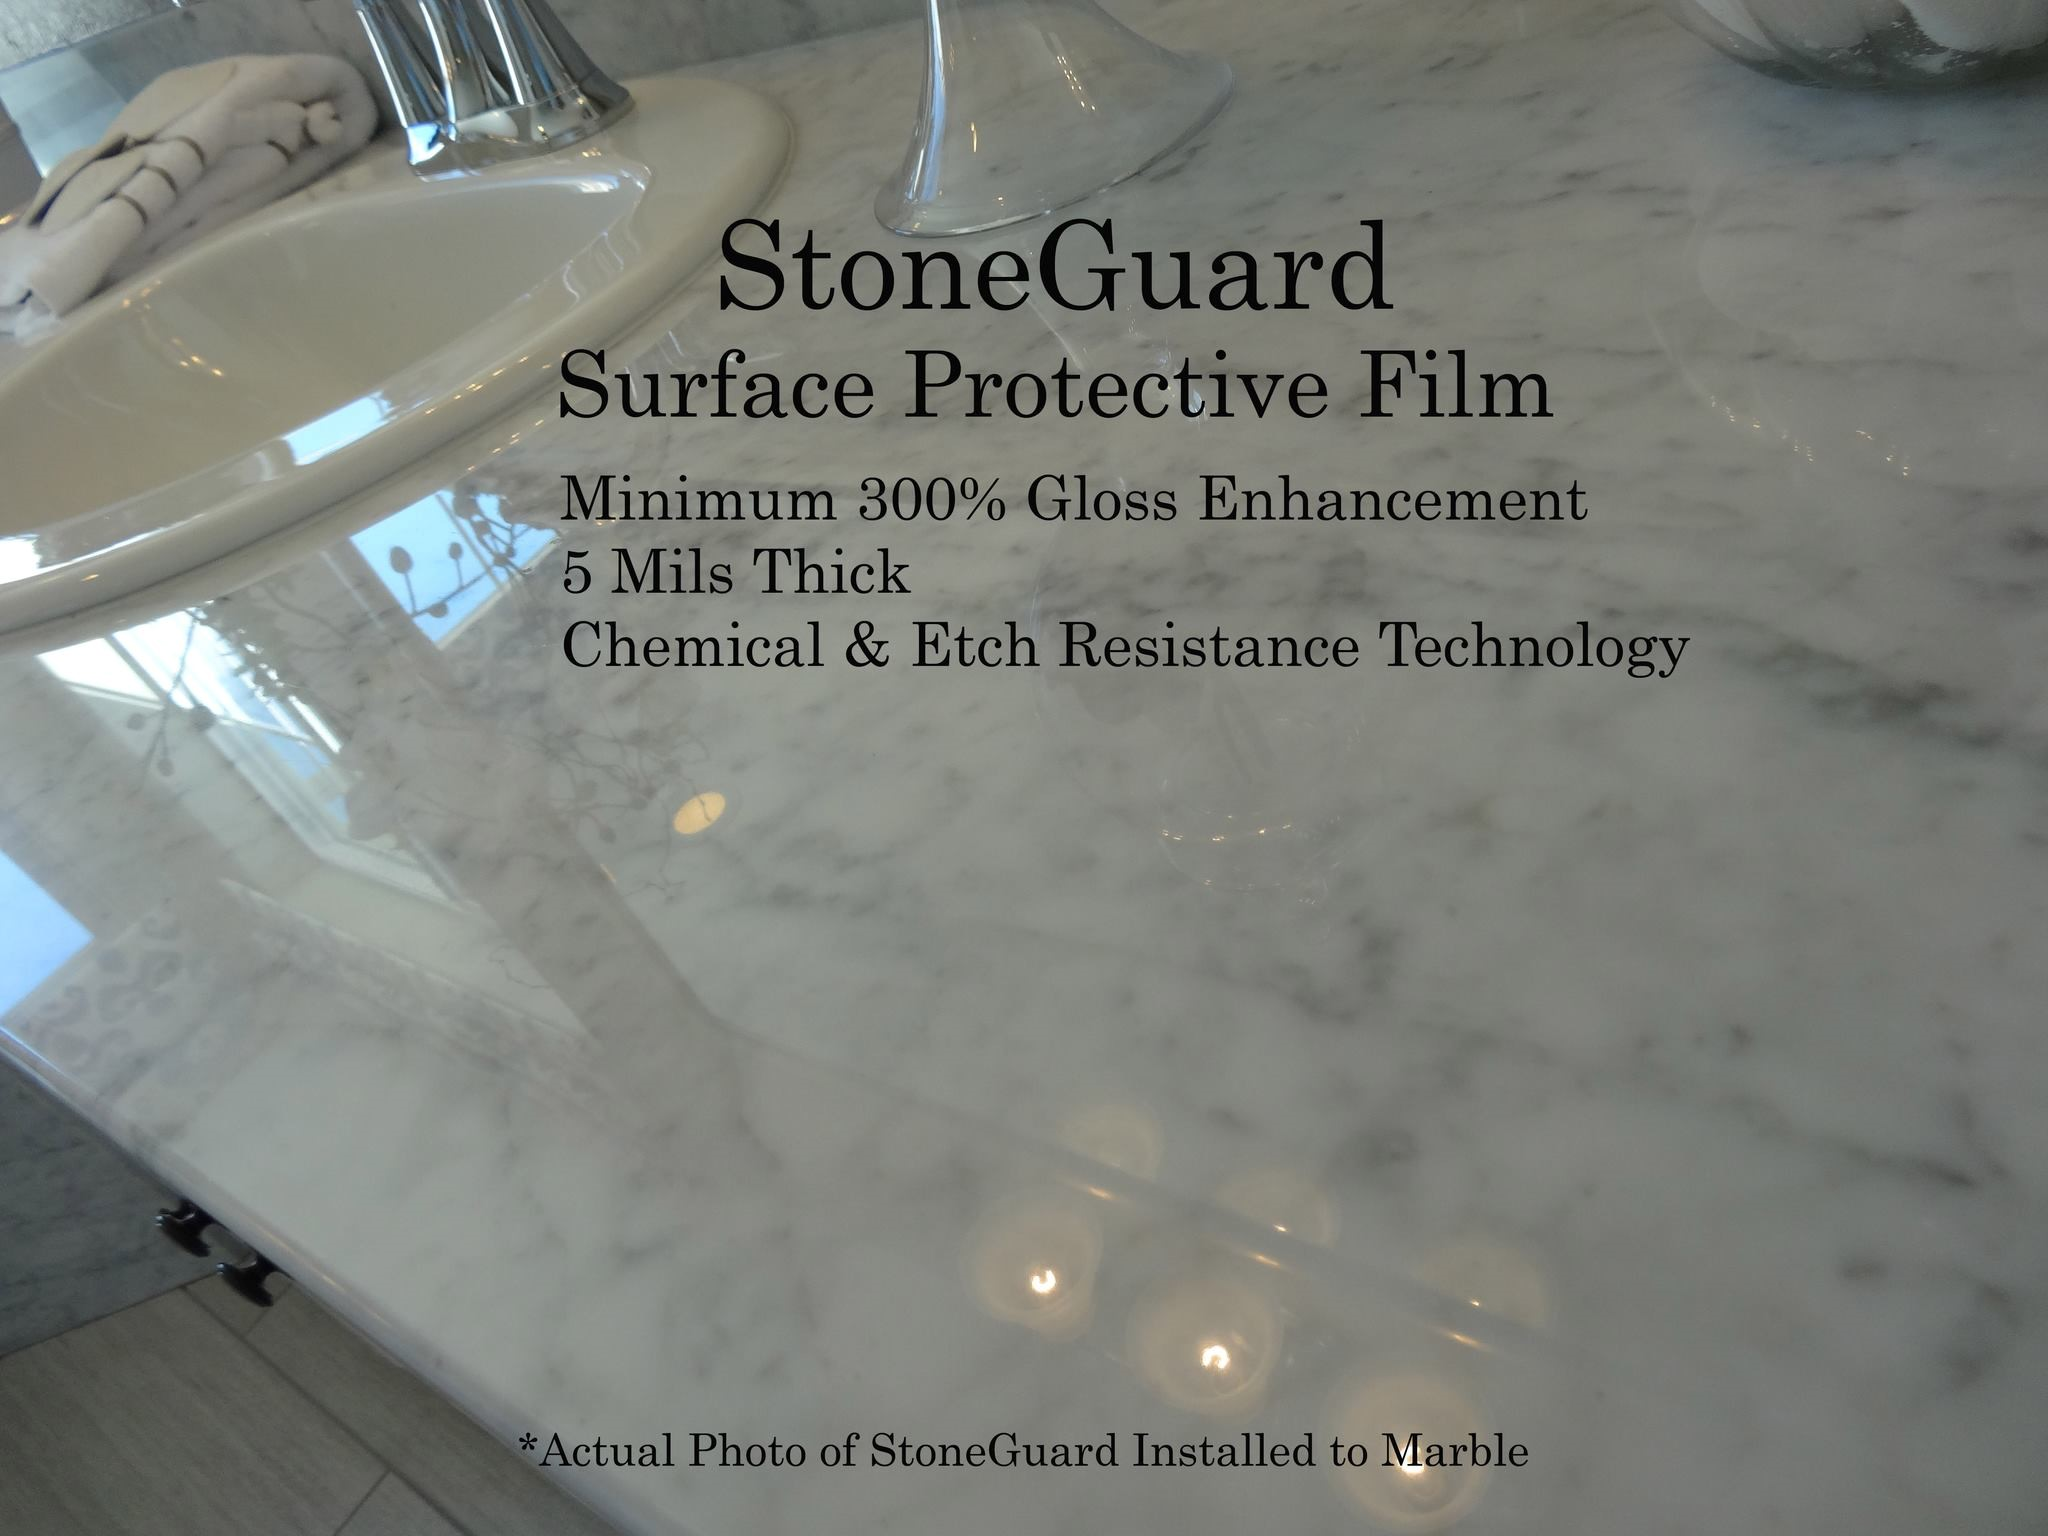 stoneguard surface protective film